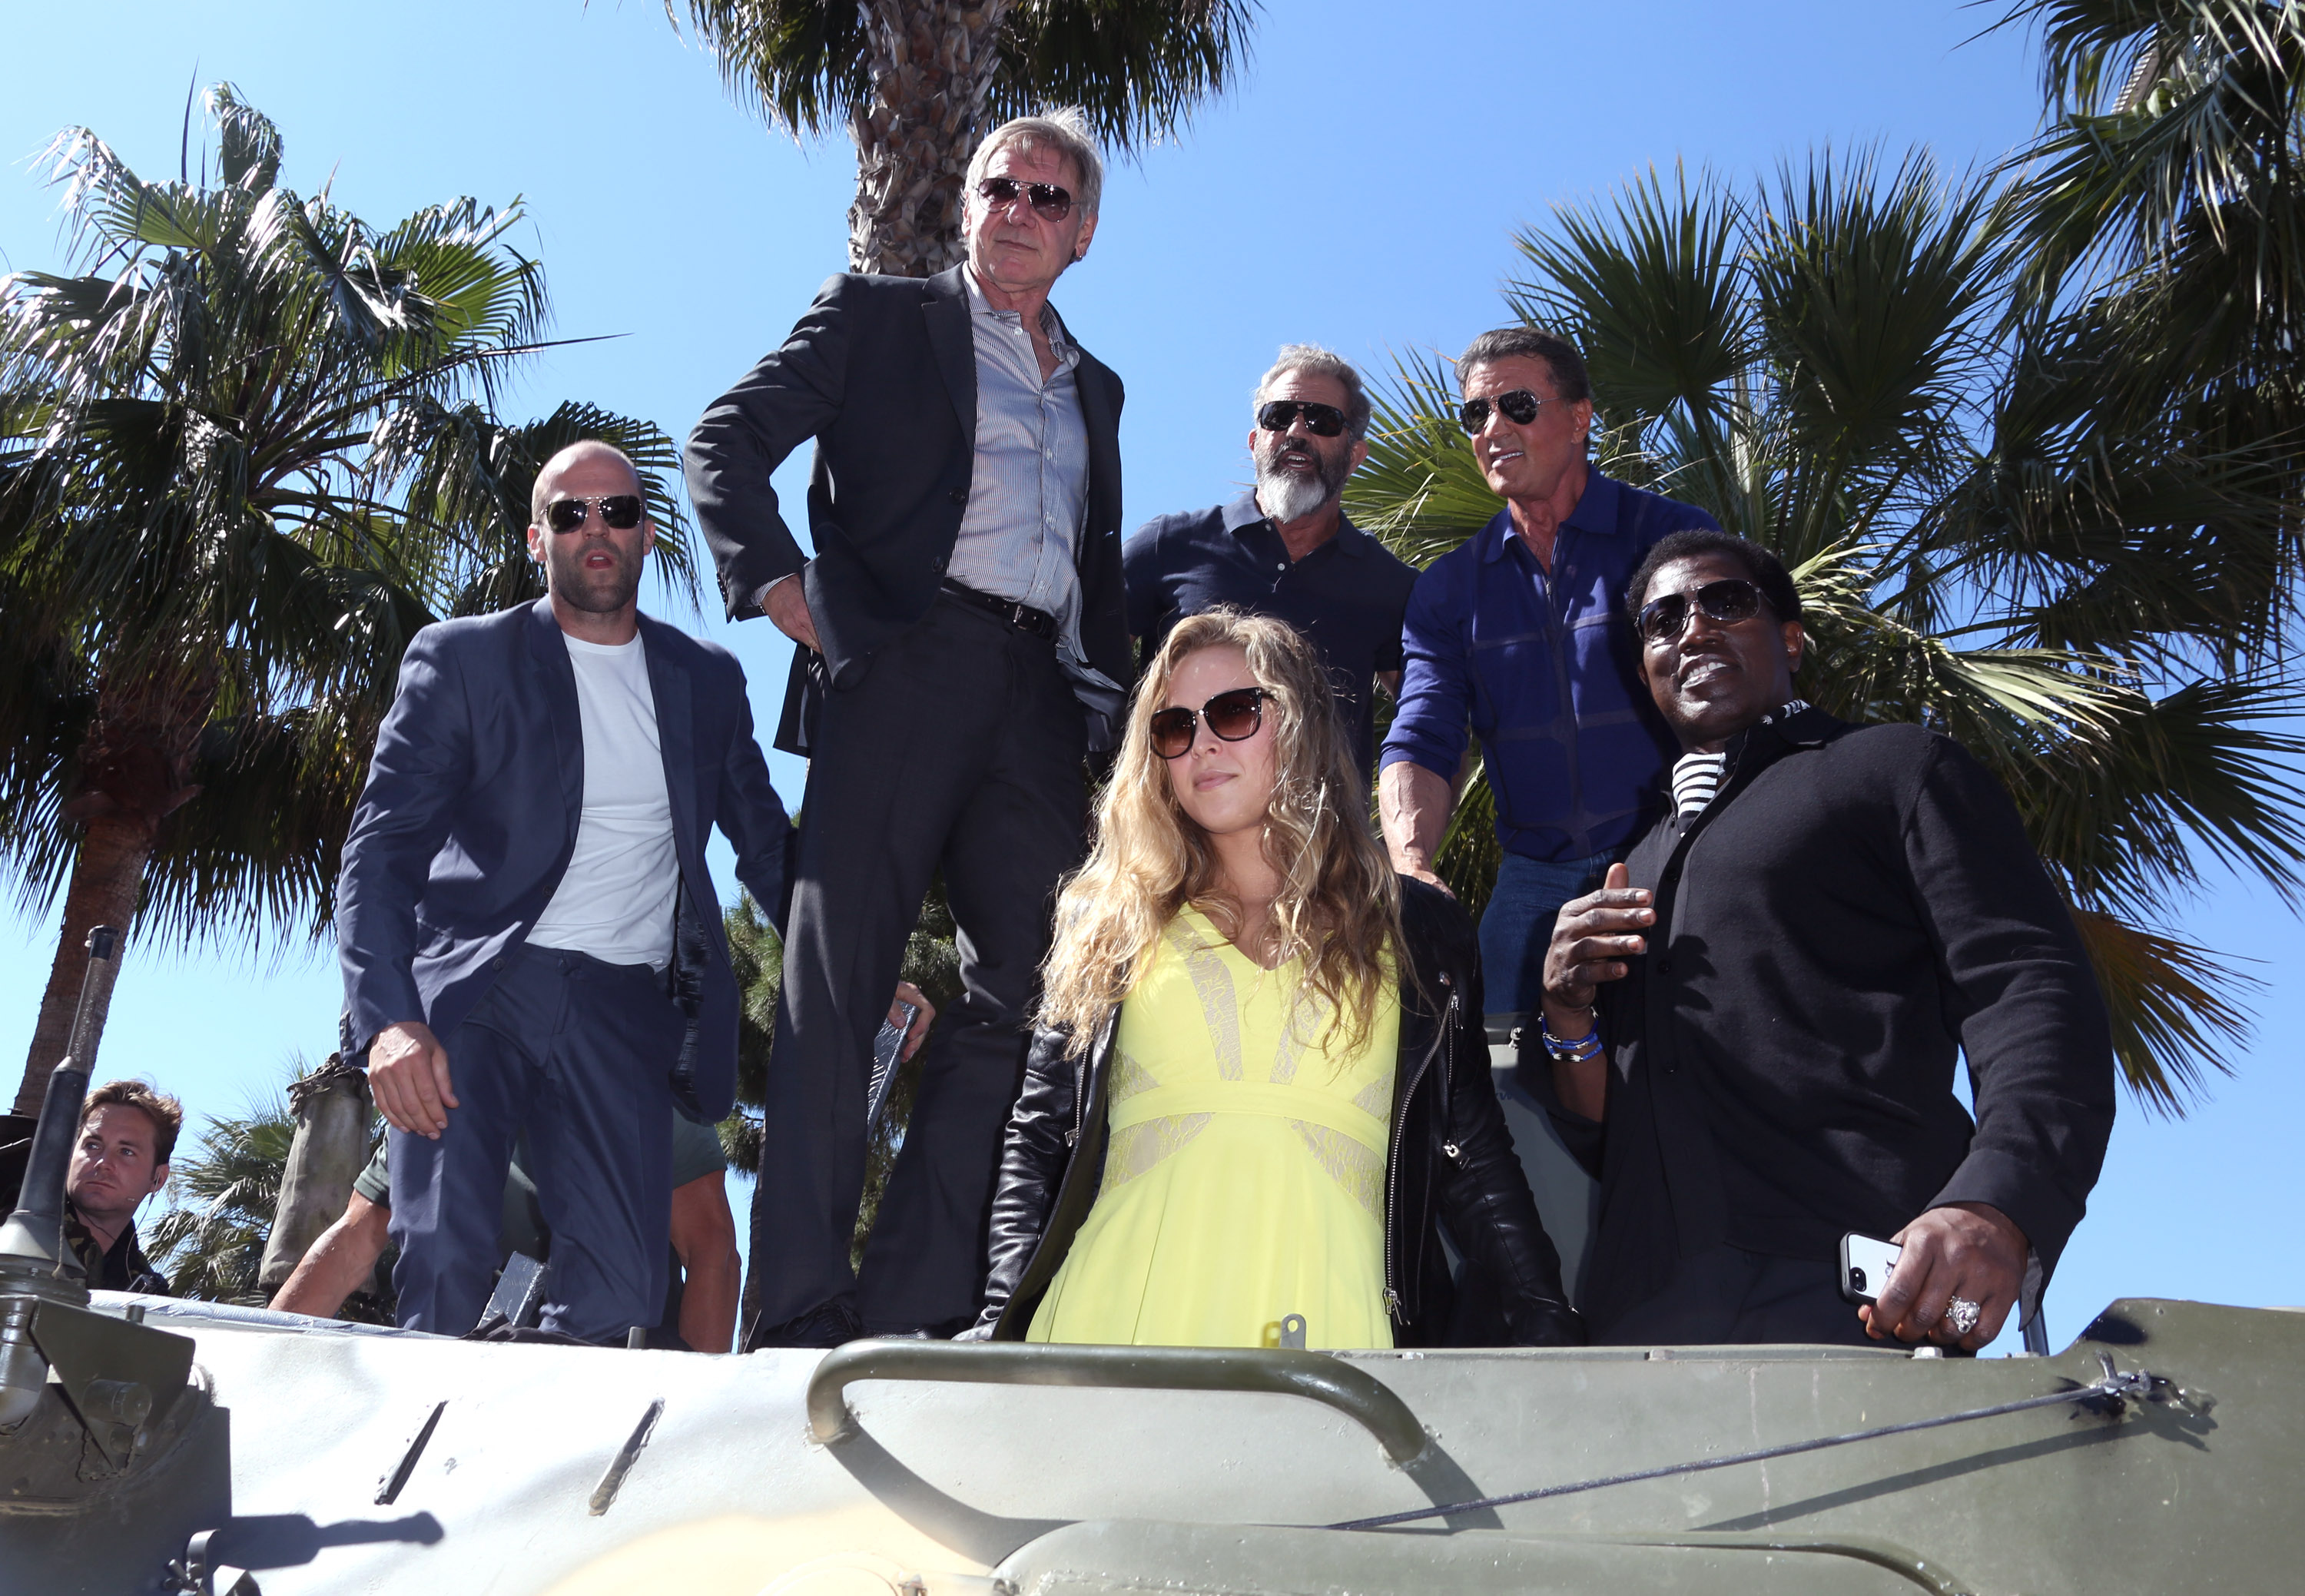 'The Expendables 3' Tank Stunt in Cannes